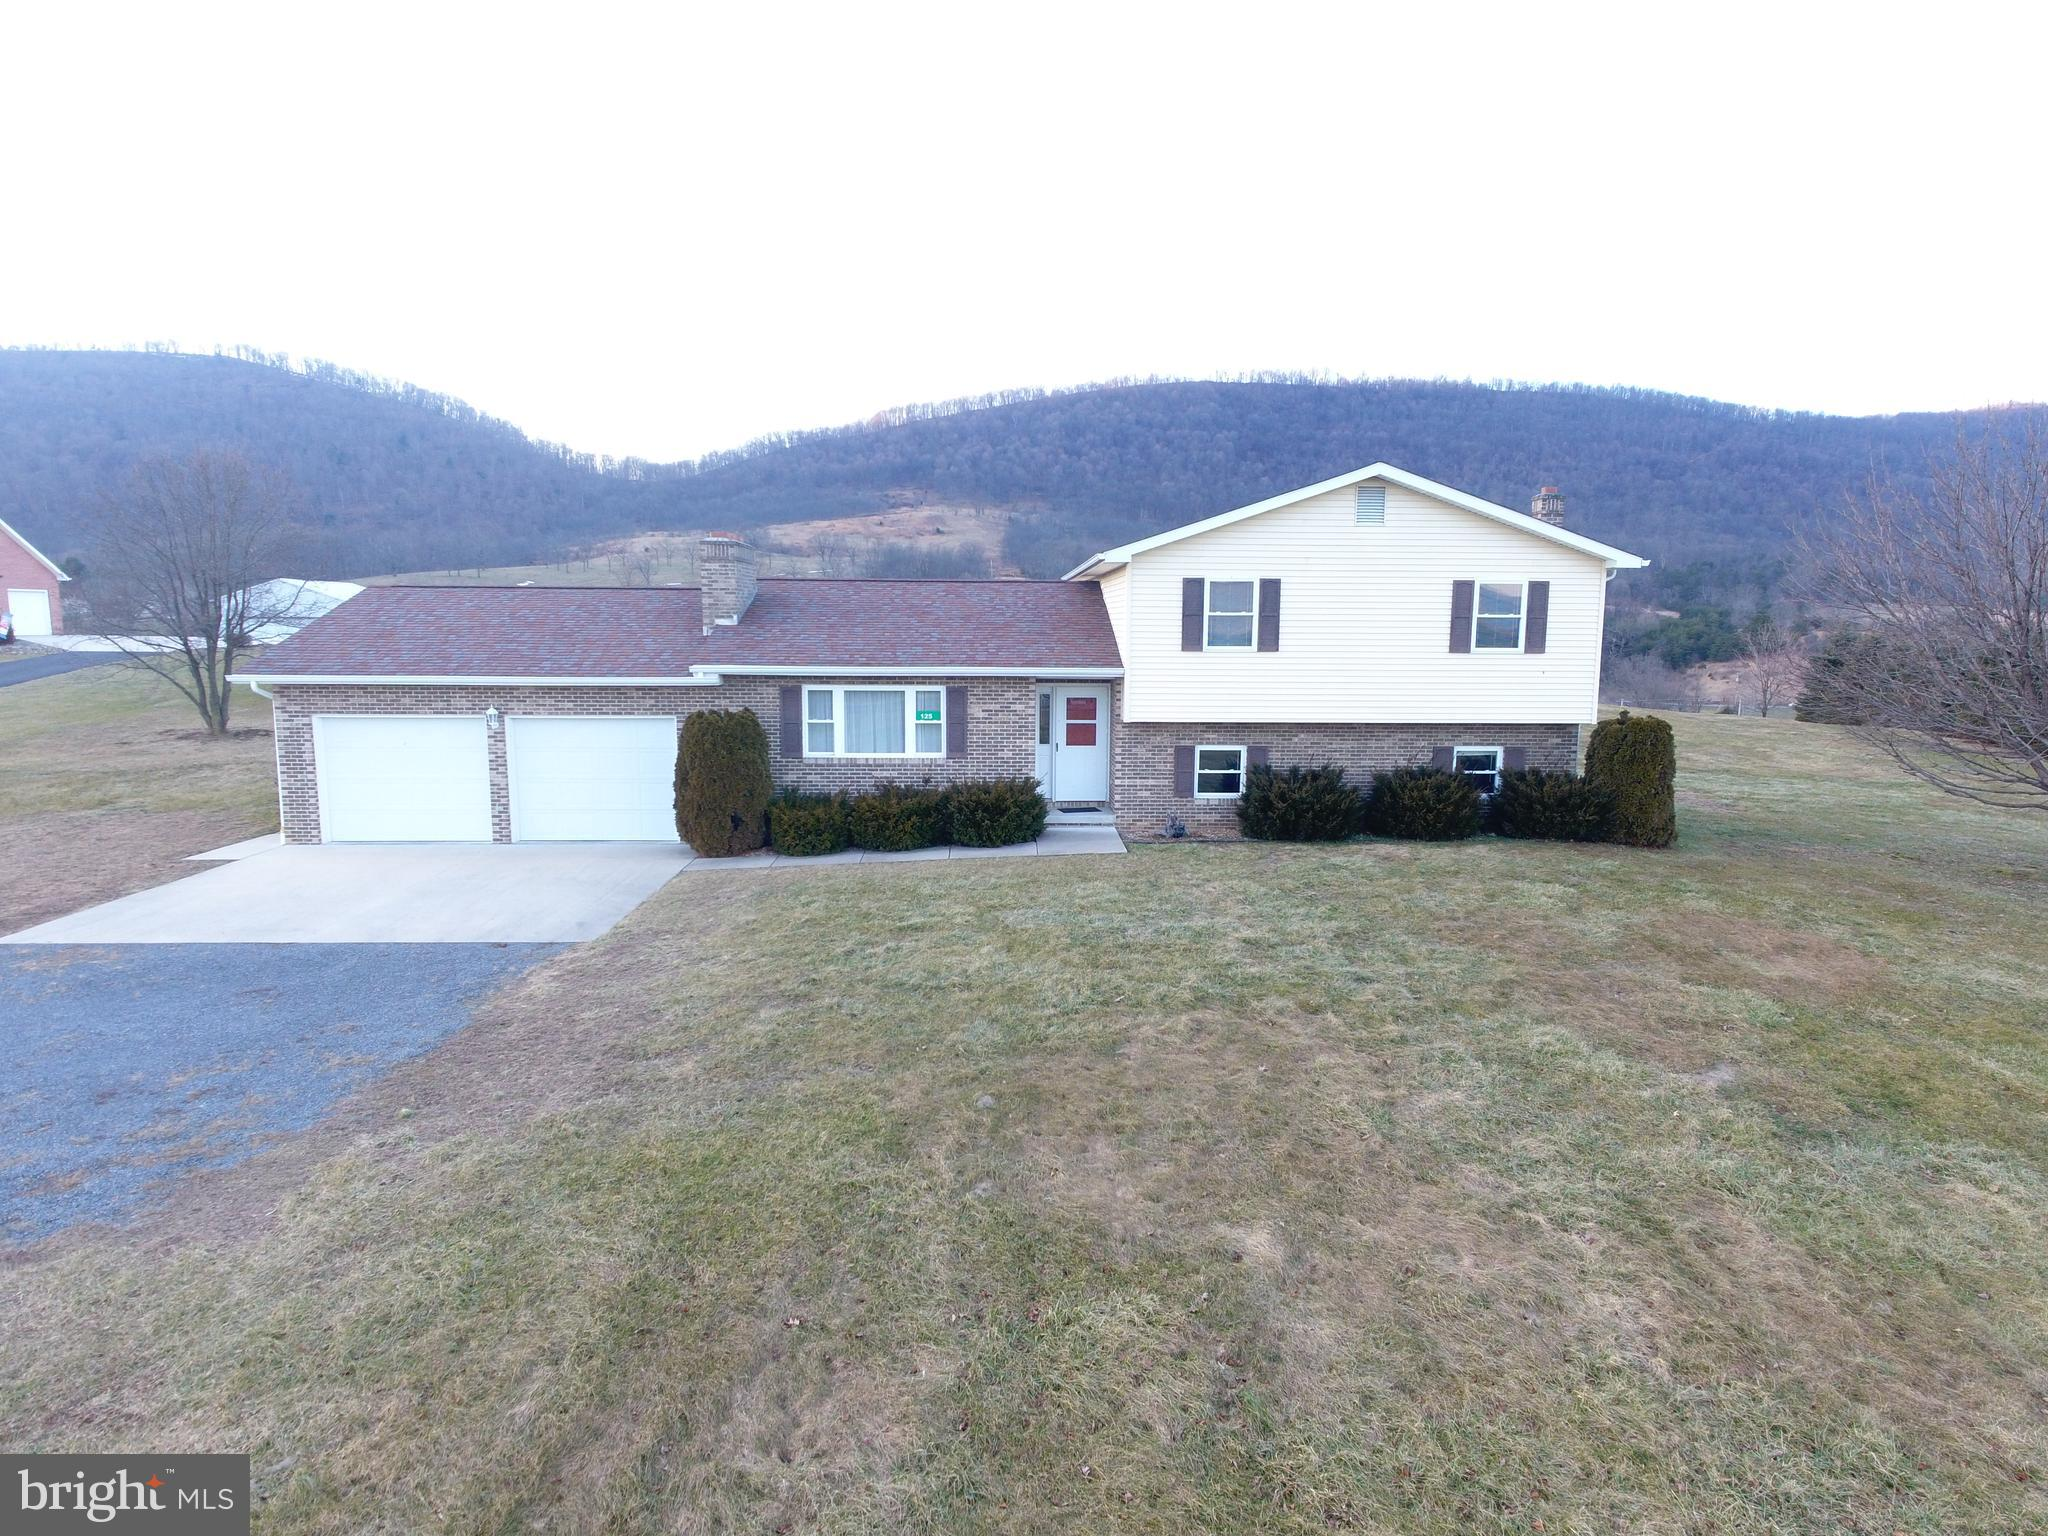 125 TWIN OAKS, MAYSVILLE, WV 26833